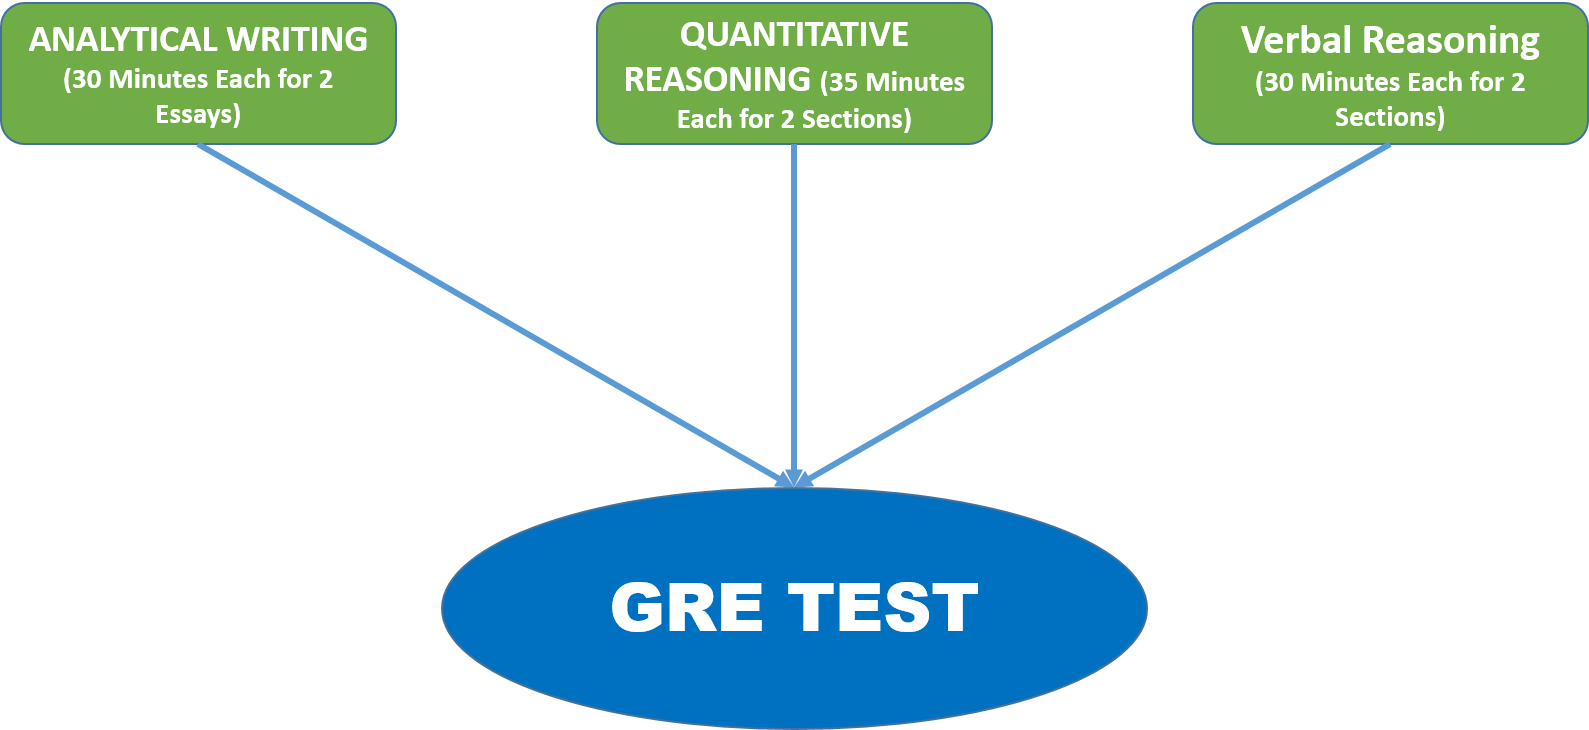 Gre Test: Is it Worth Applying for? What do You Think?